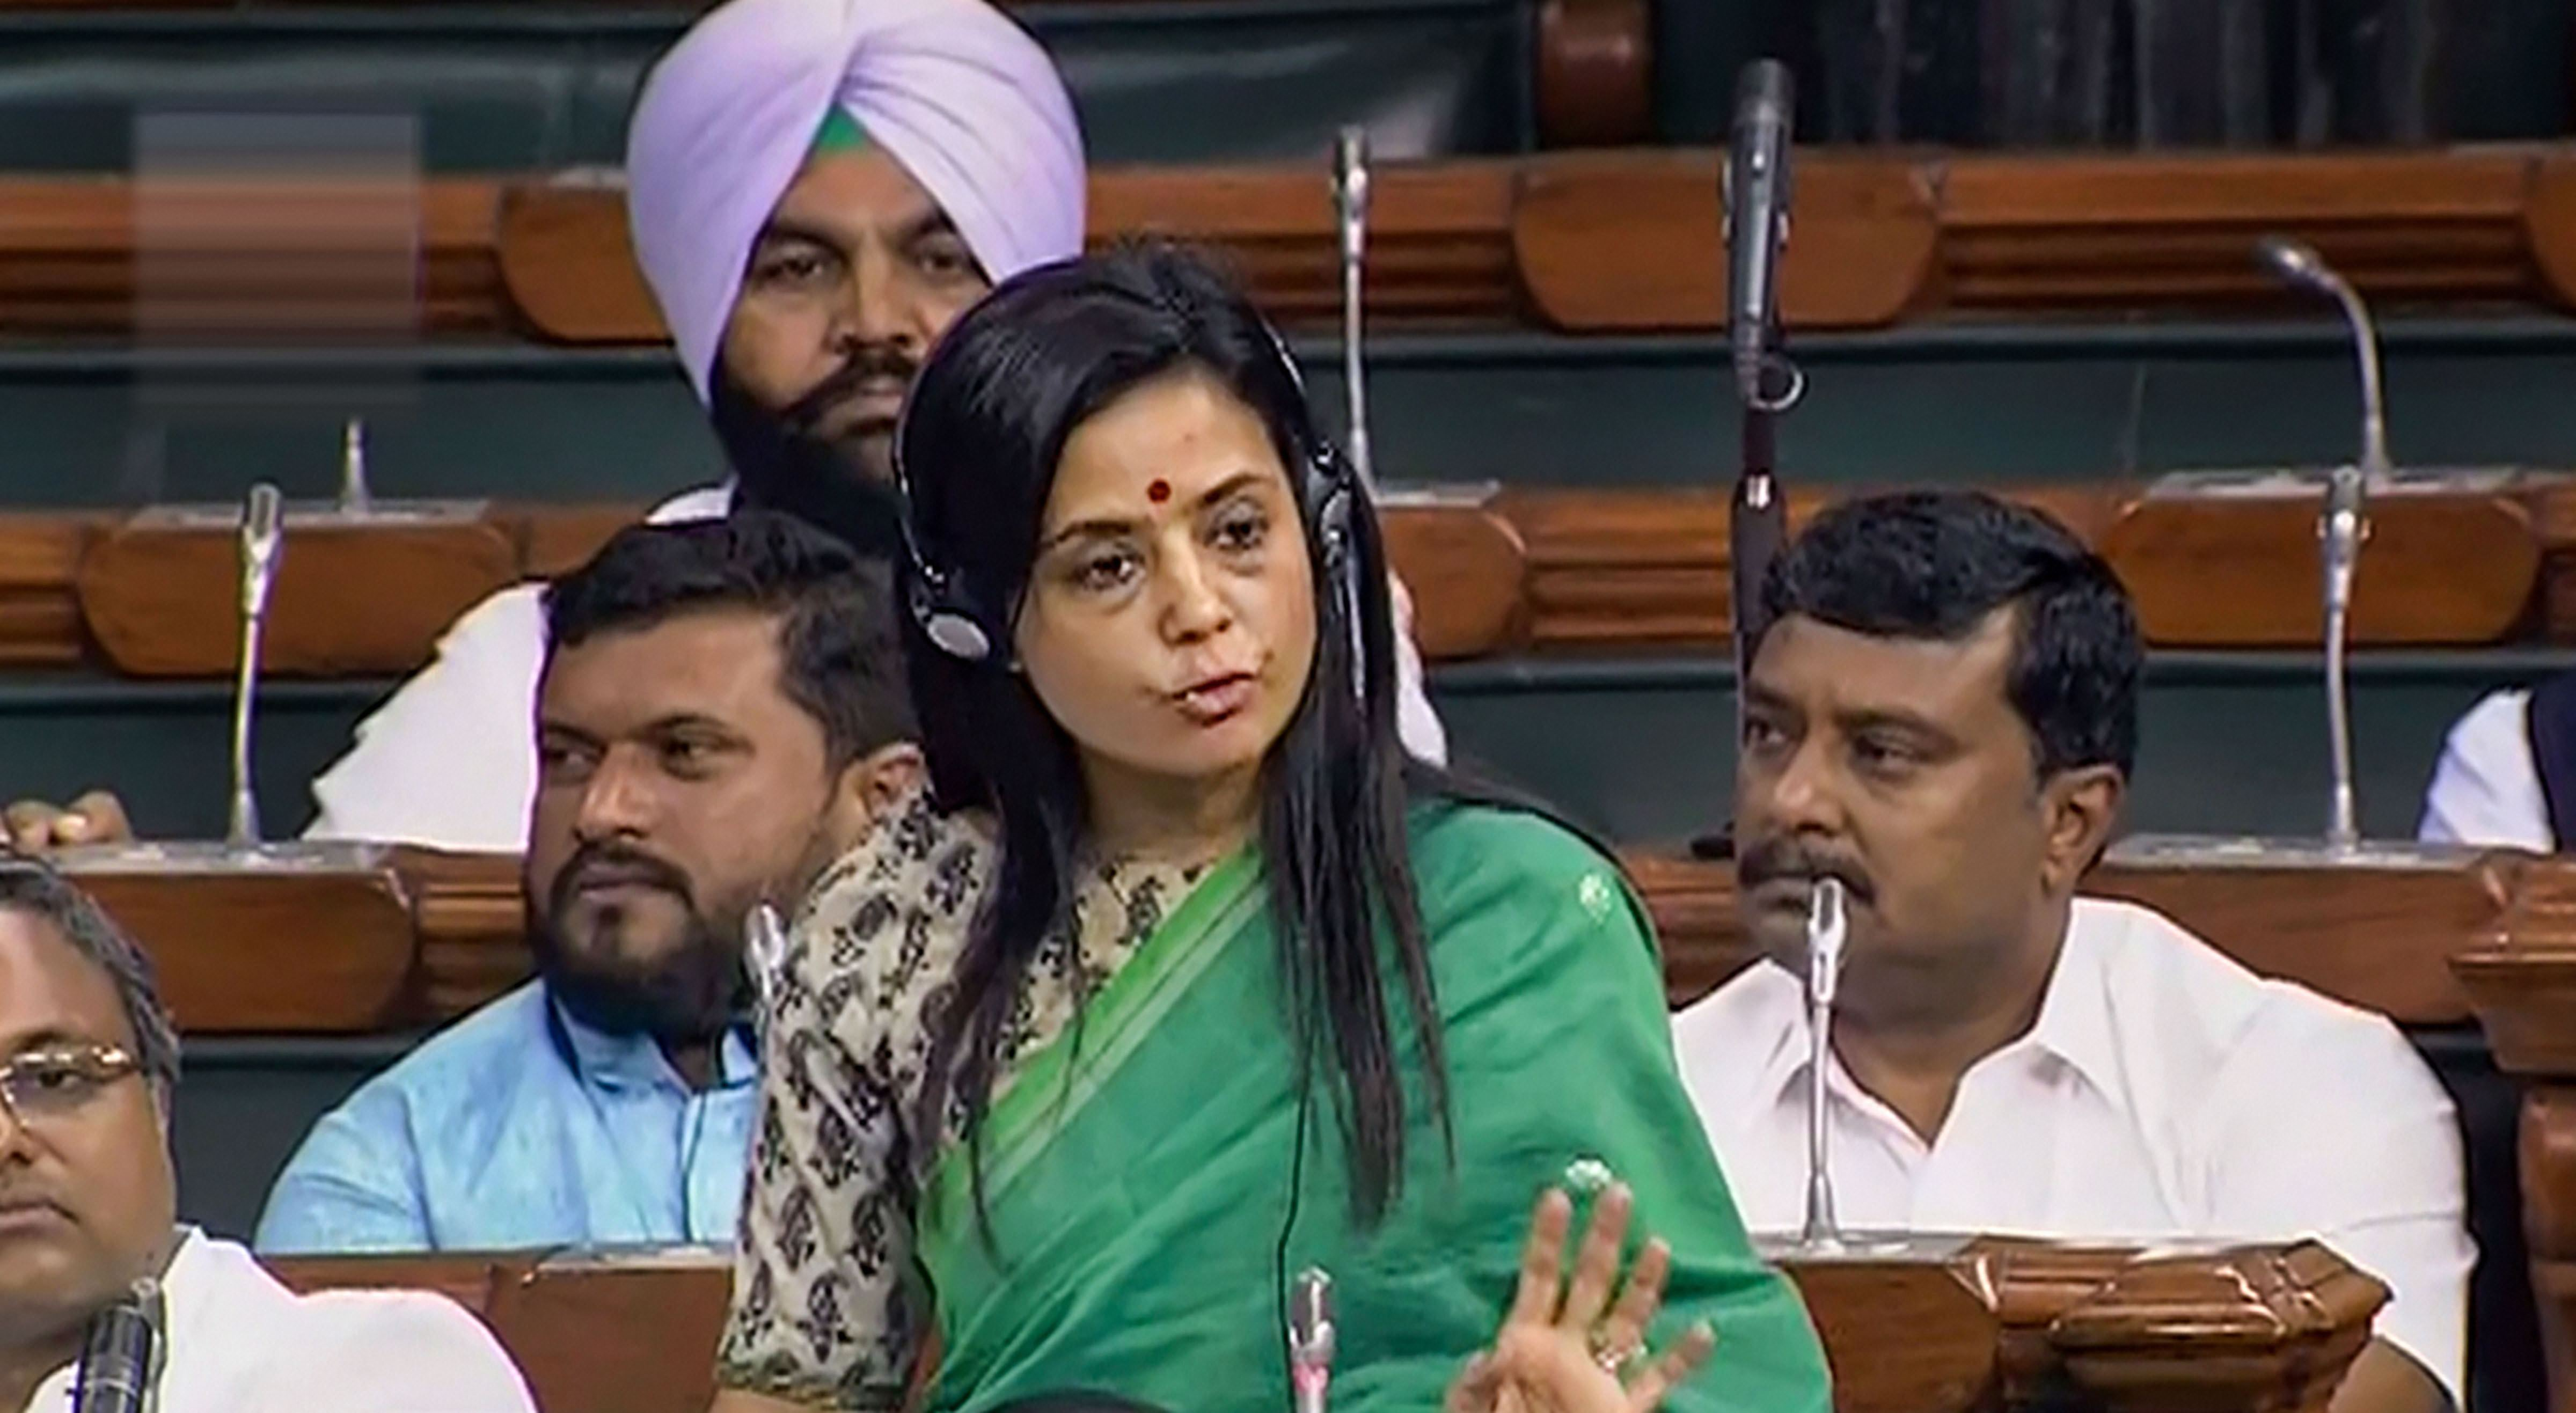 TMC MP Mahua Moitra speaks in the Lok Sabha during the Parliament budget session in New Delhi on Tuesday, July 2, 2019